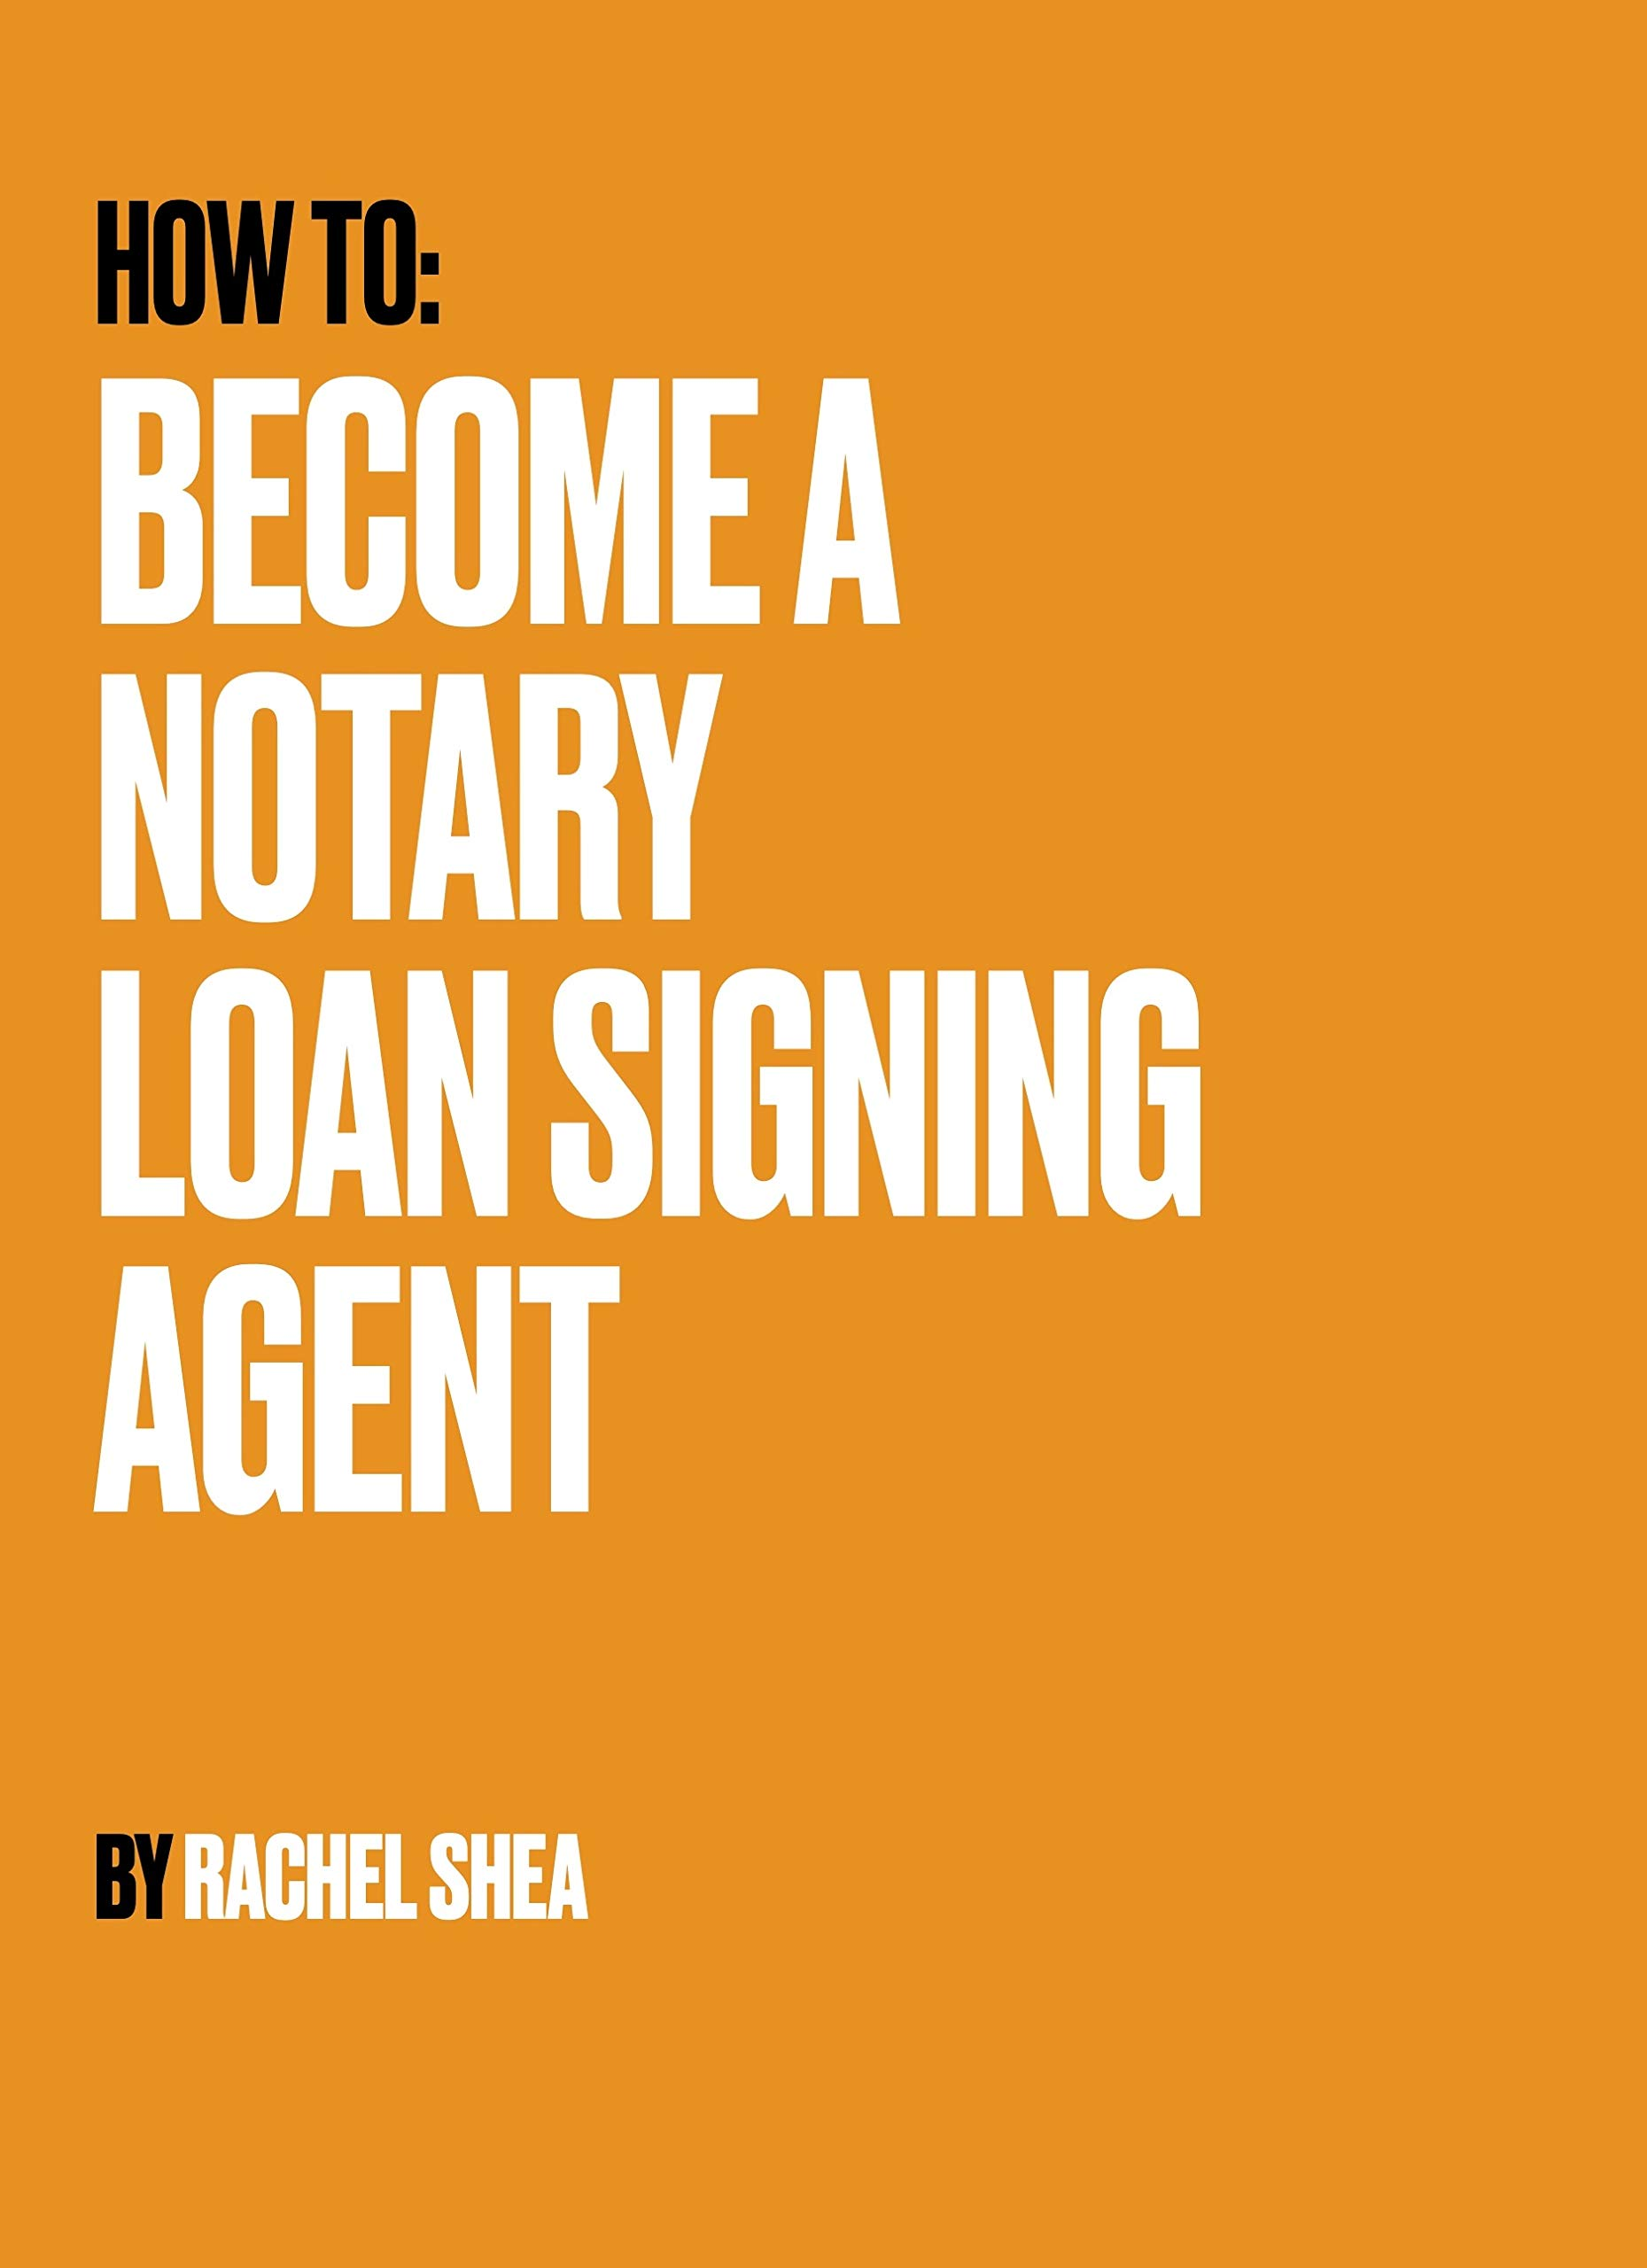 How to: Become a Notary Loan Signing Agent